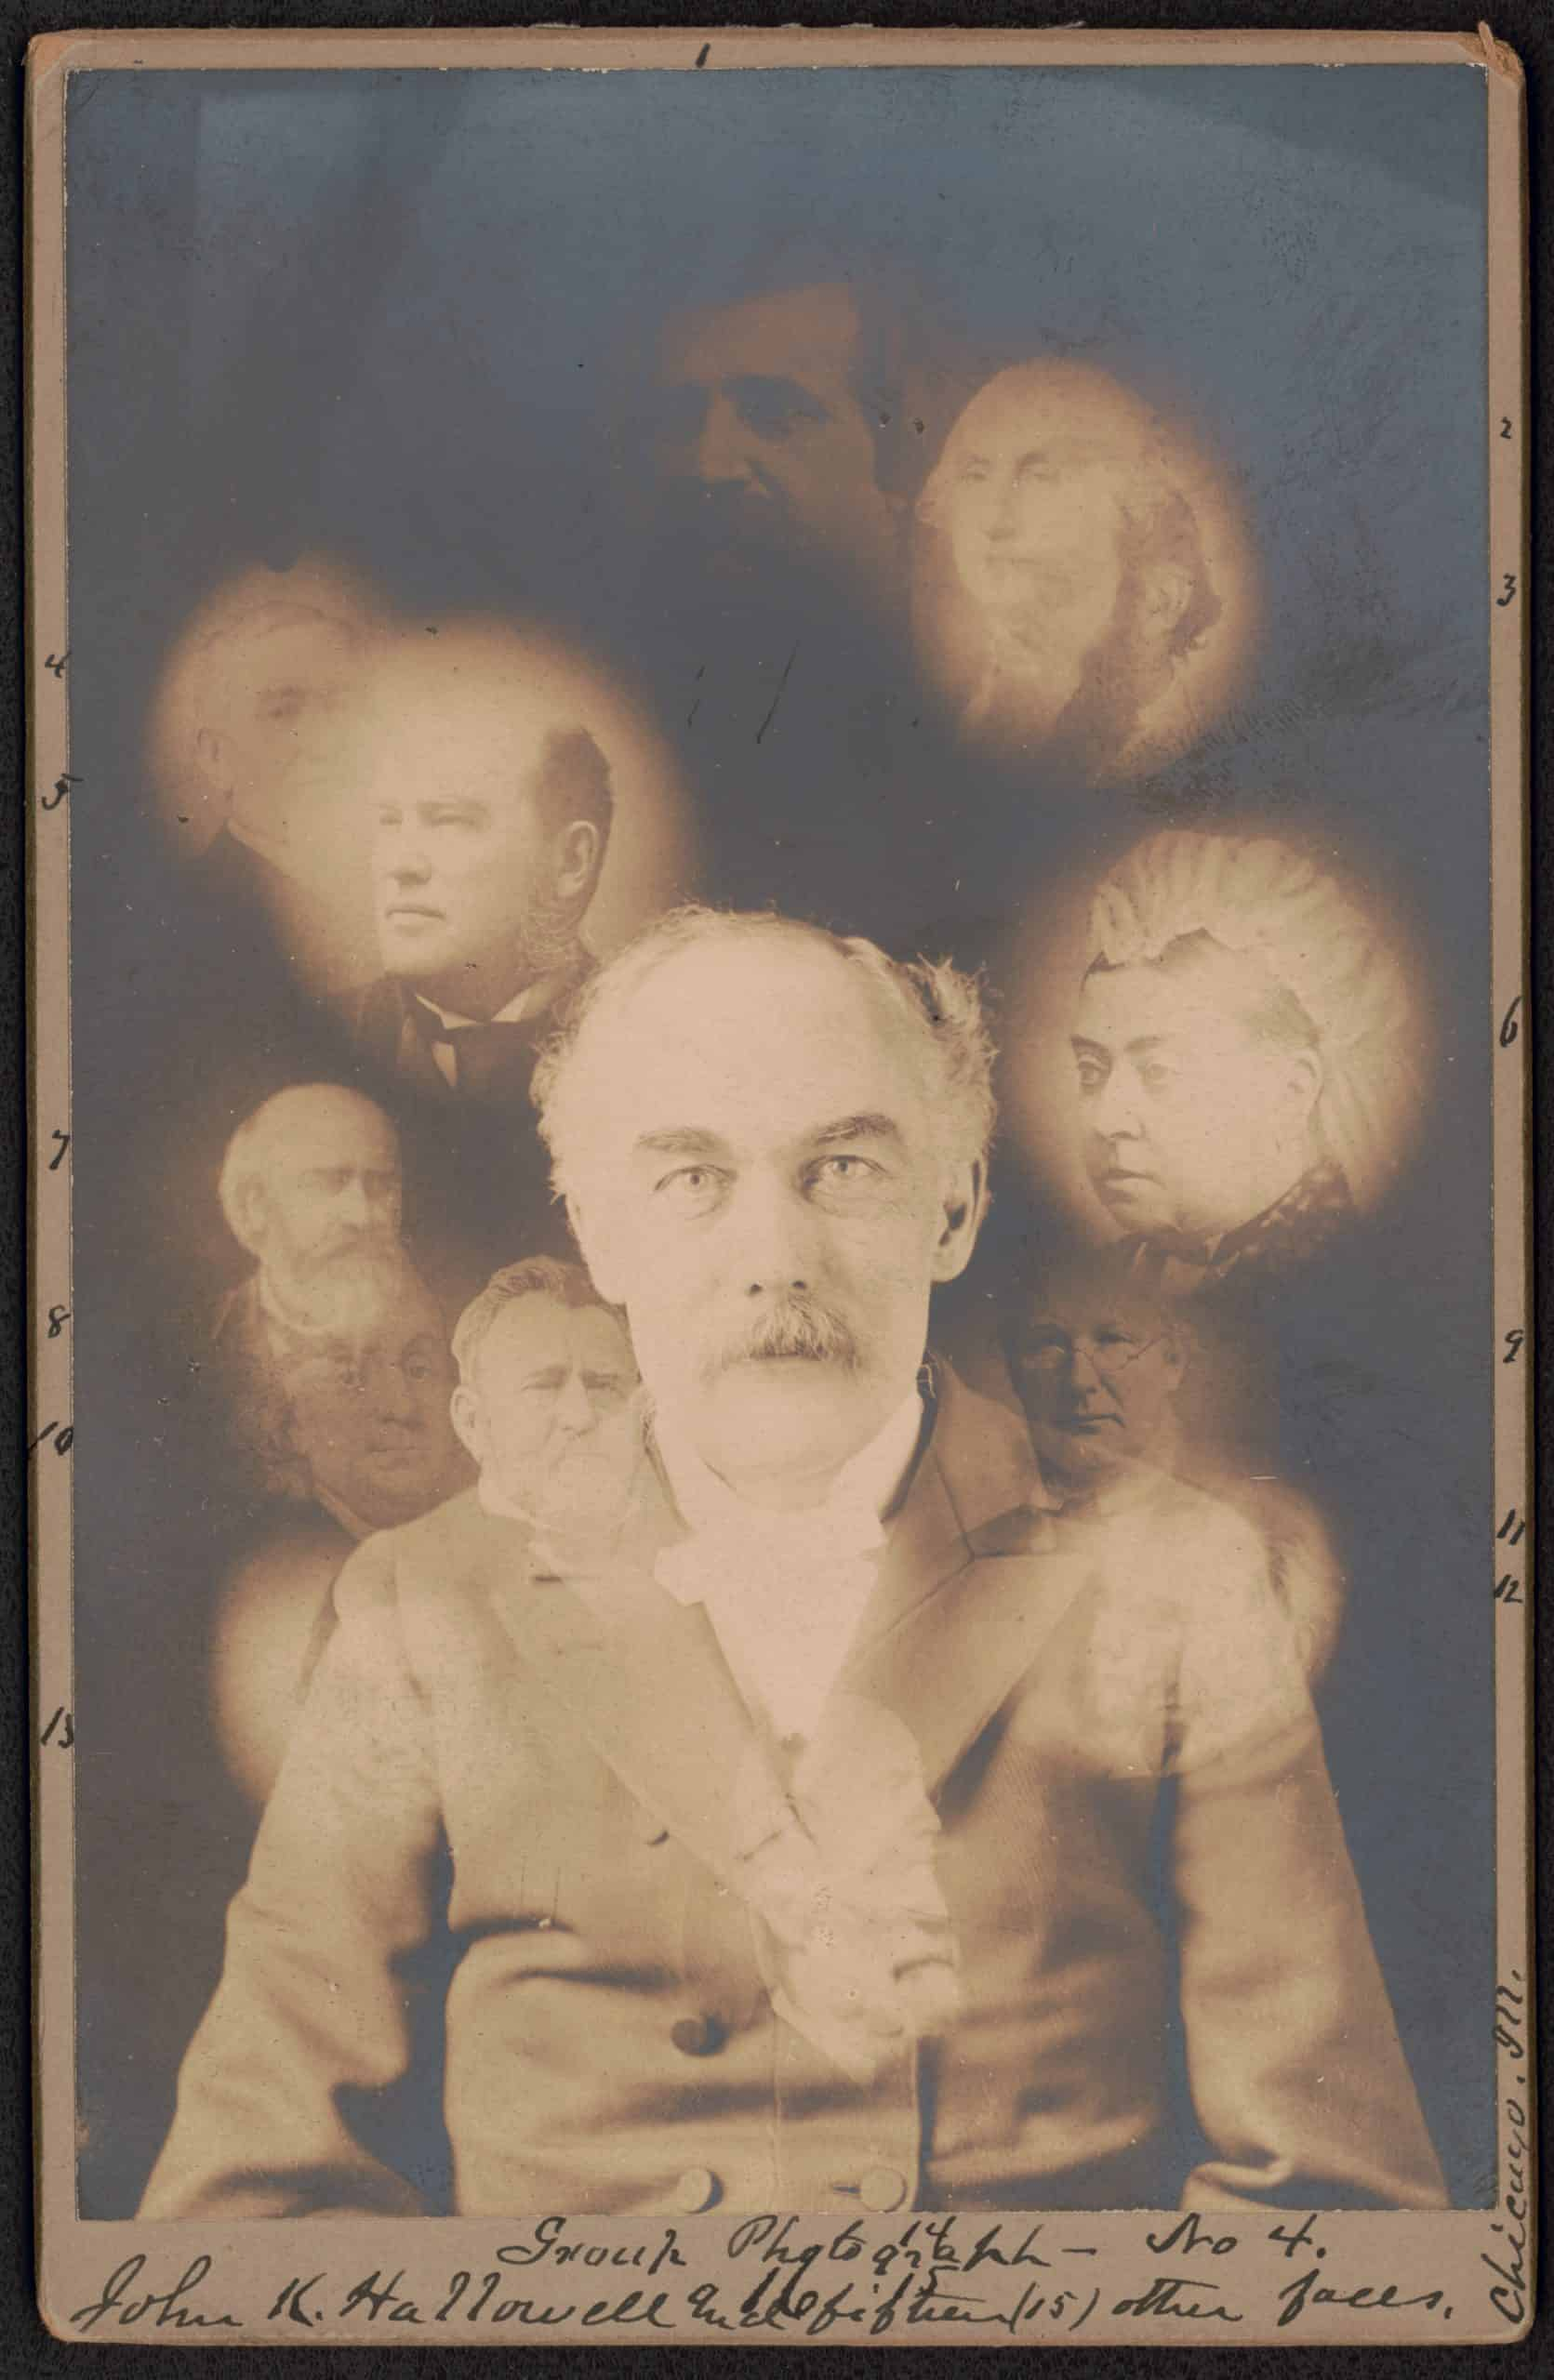 John K. Hallowell and fifteen (15) other faces / S.W. Fallis, photographer, Chicago. Spirit photograph shows portrait of John K. Hallowell and super-imposed faces of fifteen deceased people including George Washington and Queen Victoria. S. W. Fallis, 1901